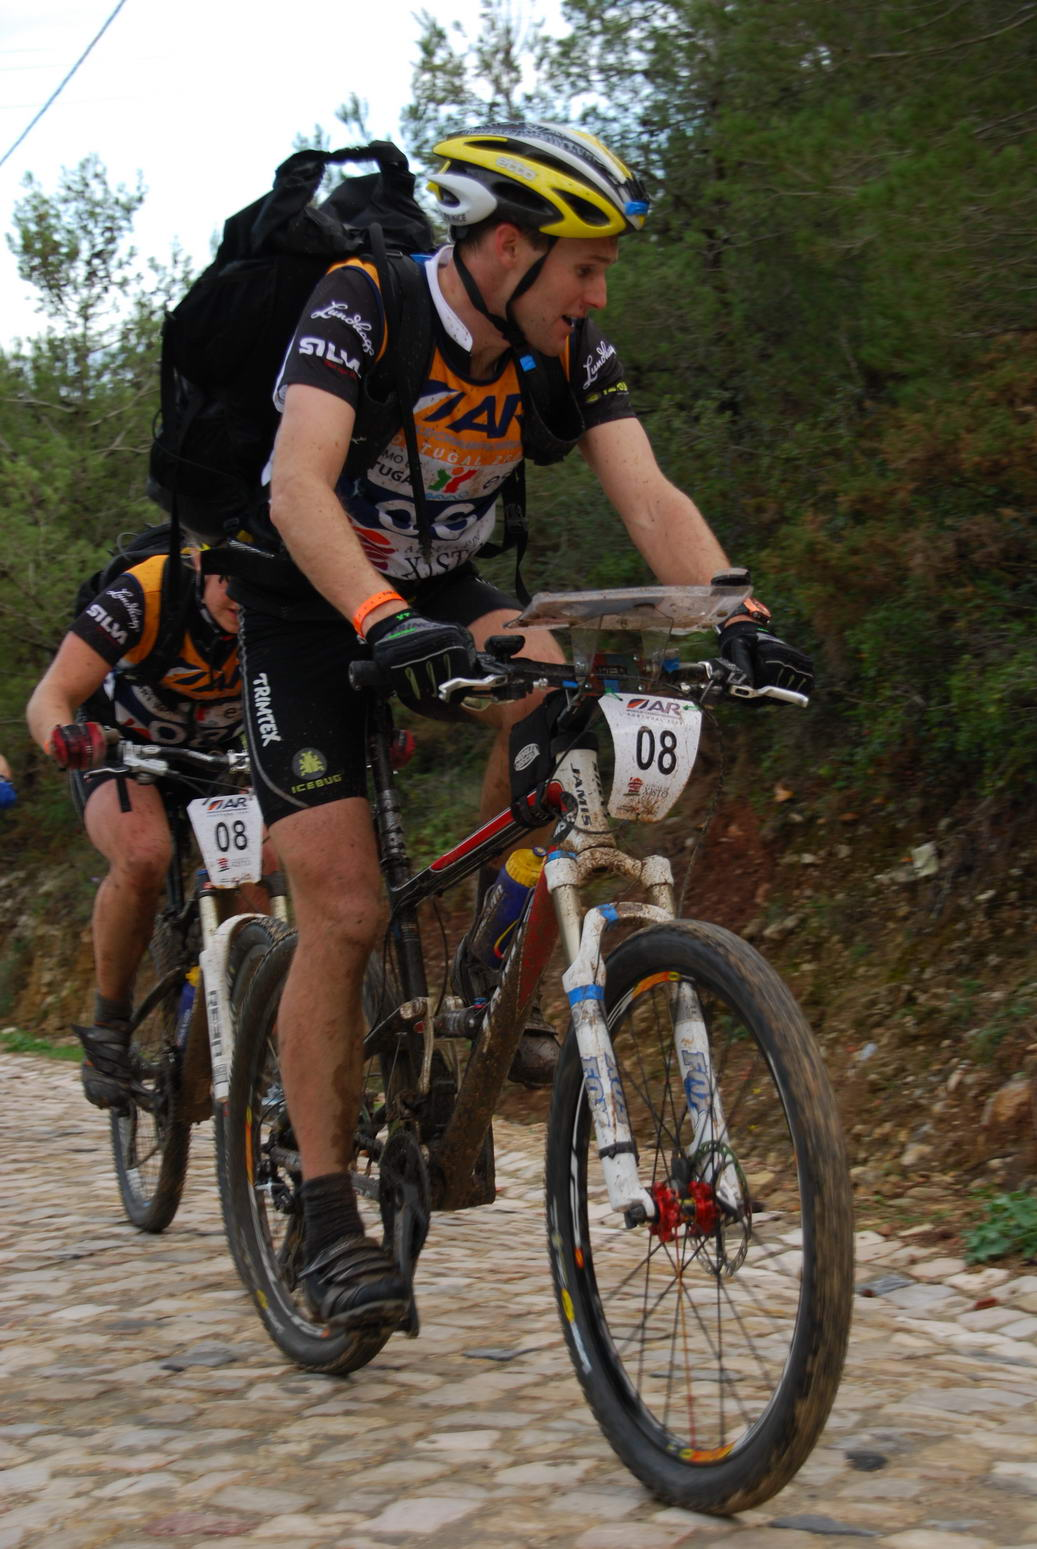 Aaron leads the way (Portugal ARWC 2009)